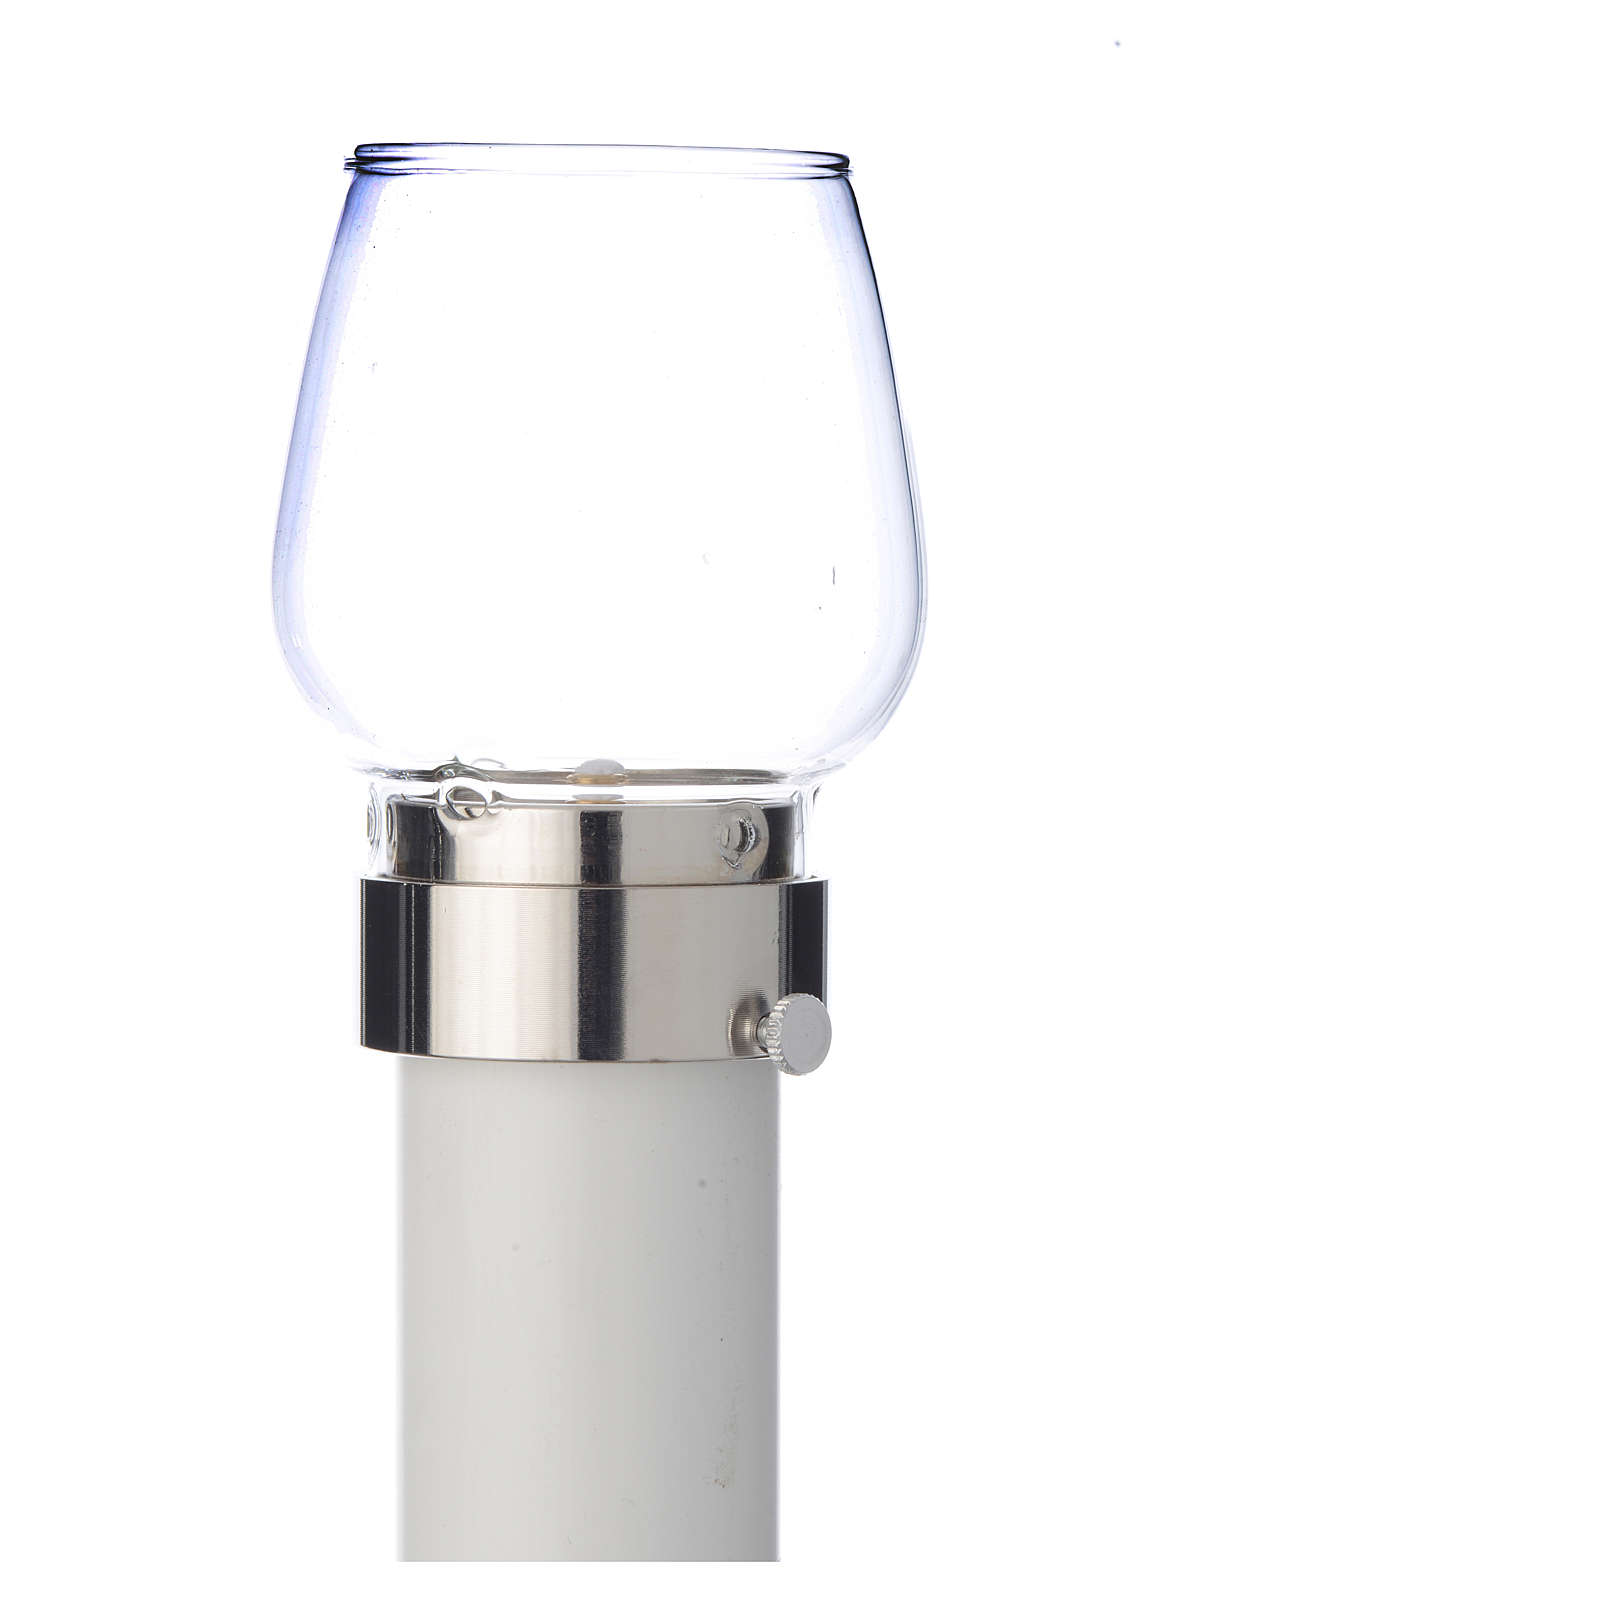 Wind-proof lamp, 100cm tall with silver base, 4cm diameter 3